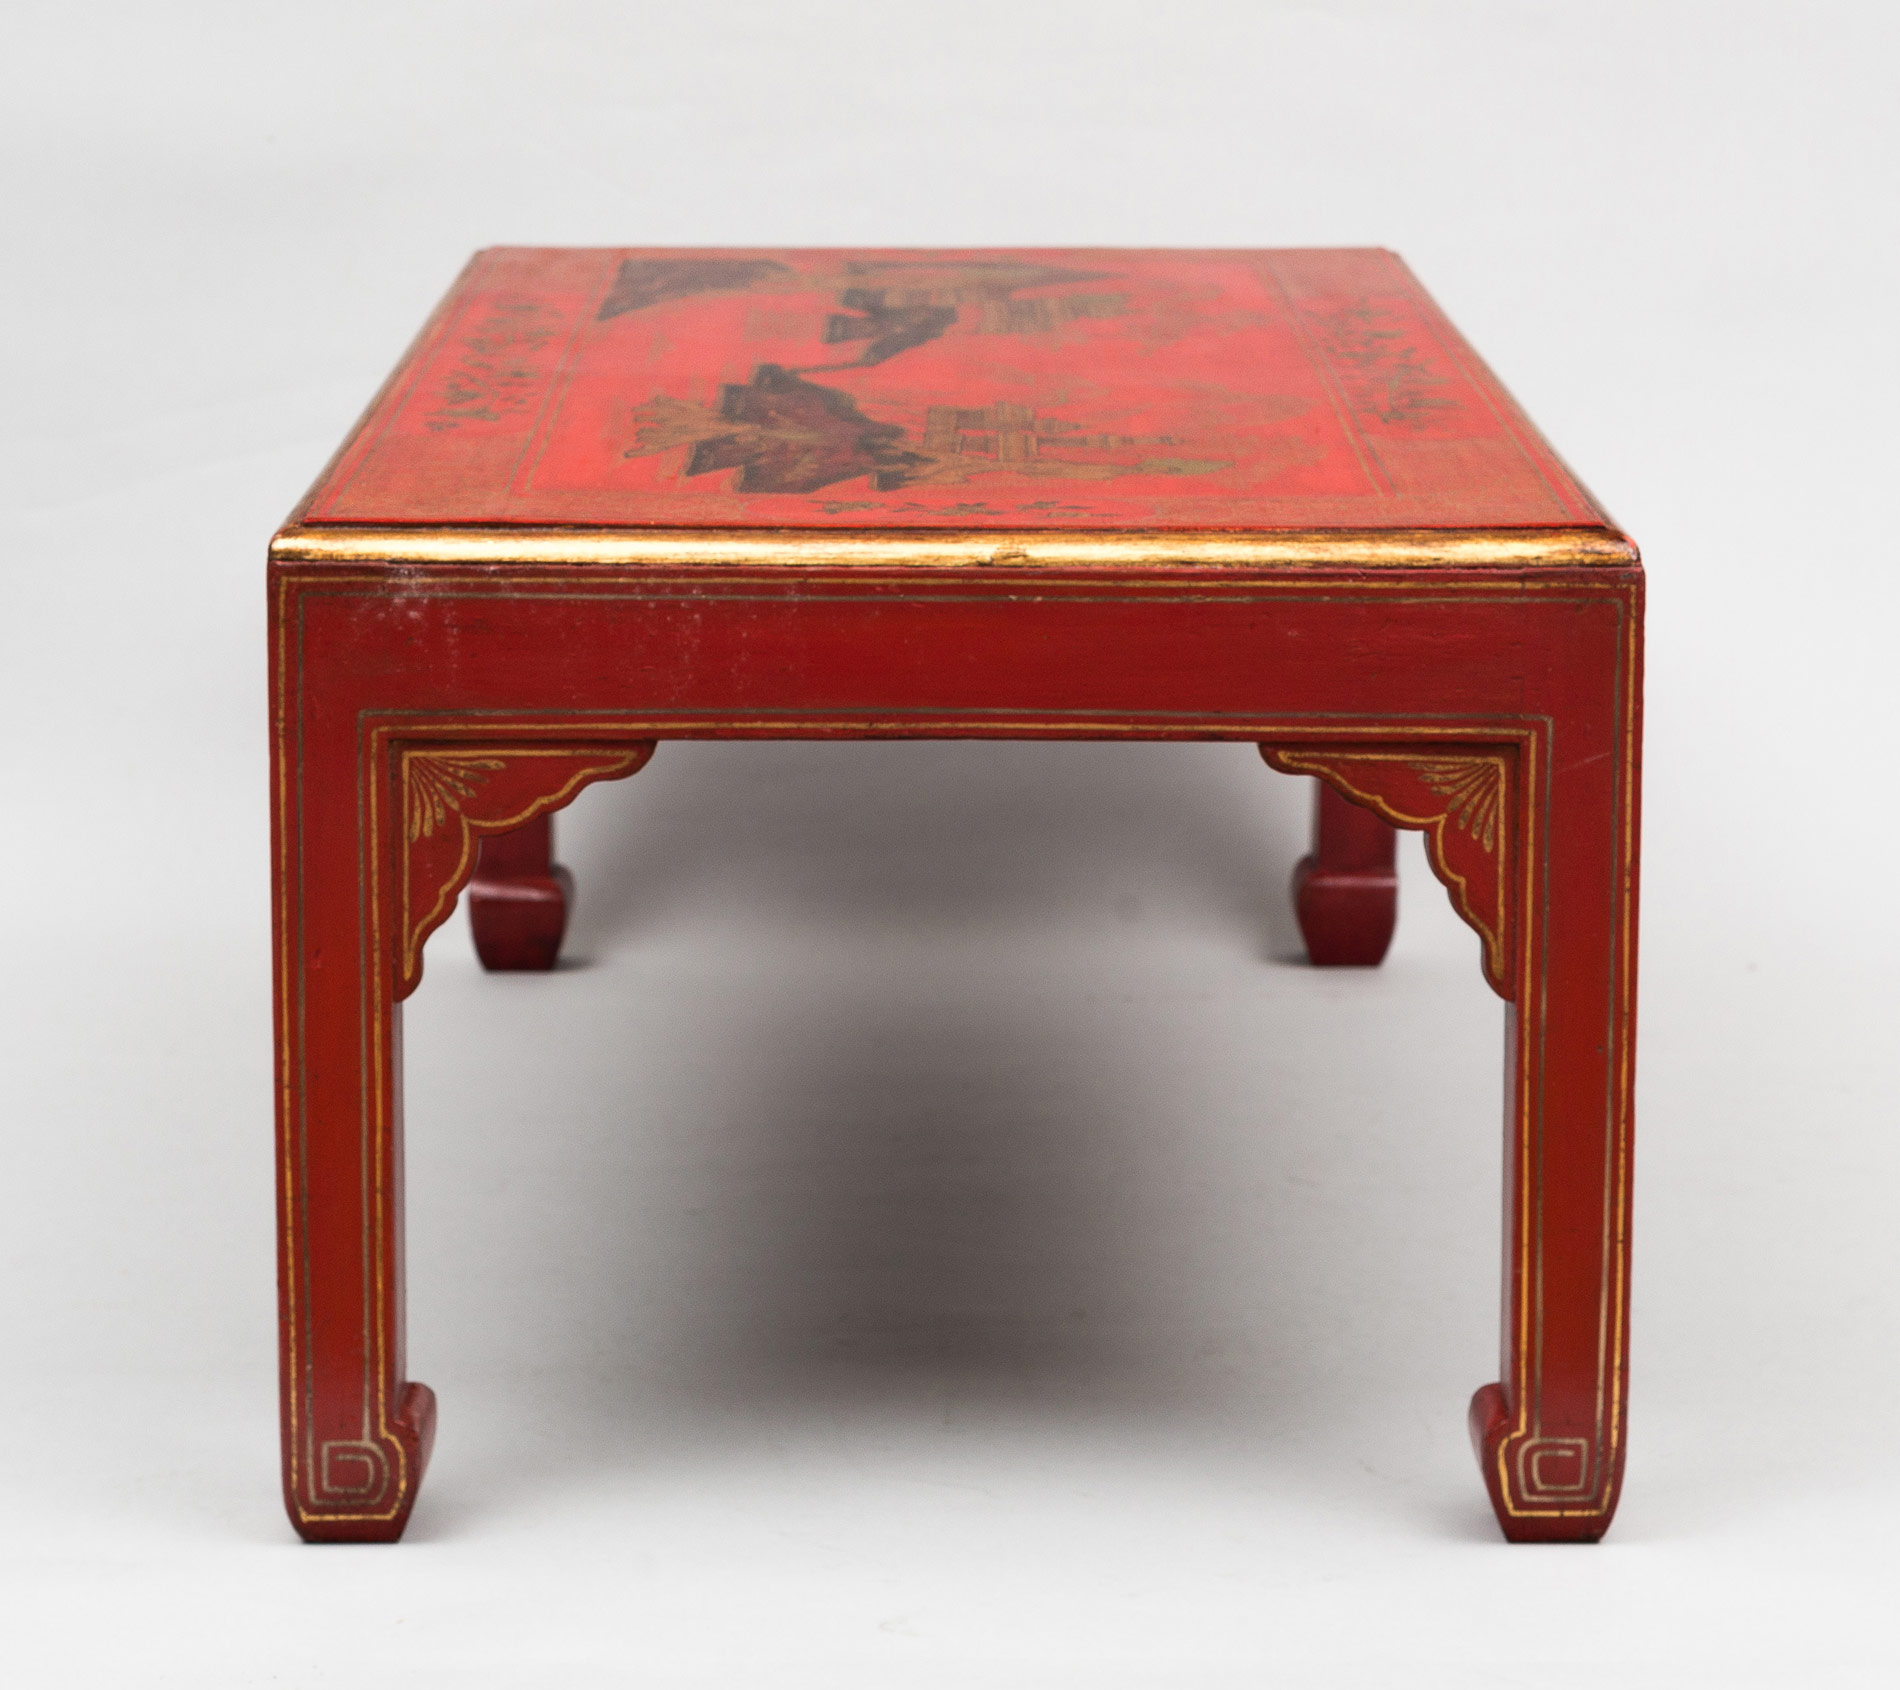 Black Coffee Table Sheffield: » Product » Chinoiserie Red Lacquered Coffee Table